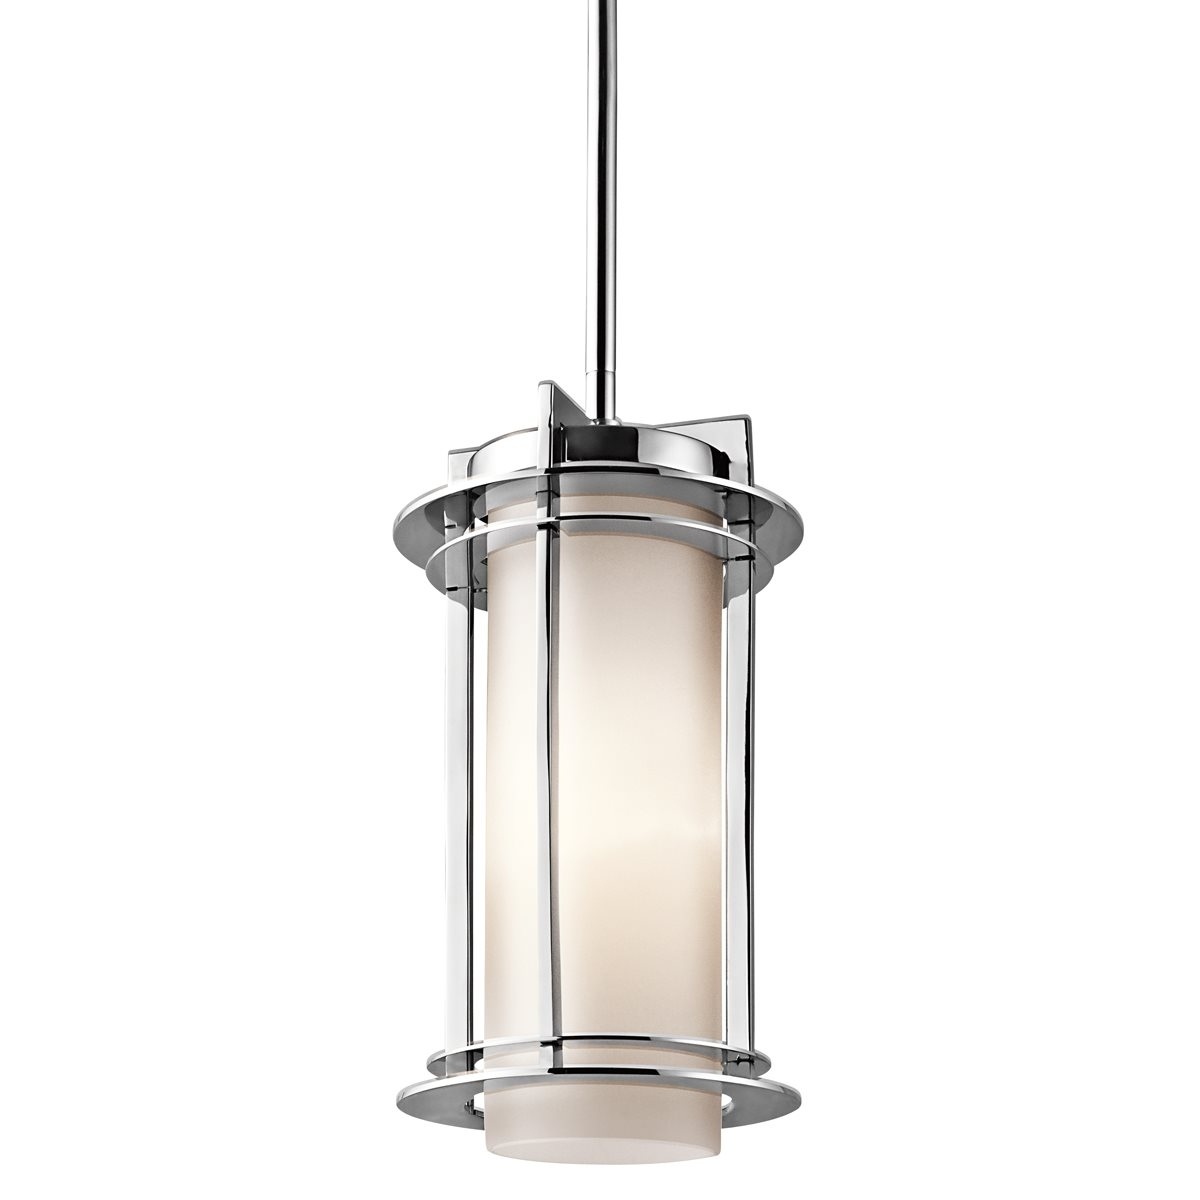 Pendant Lighting Ideas: Modern Outdoor Pendant Lighting Fixtures Regarding Widely Used Outdoor Hanging Entry Lights (View 16 of 20)